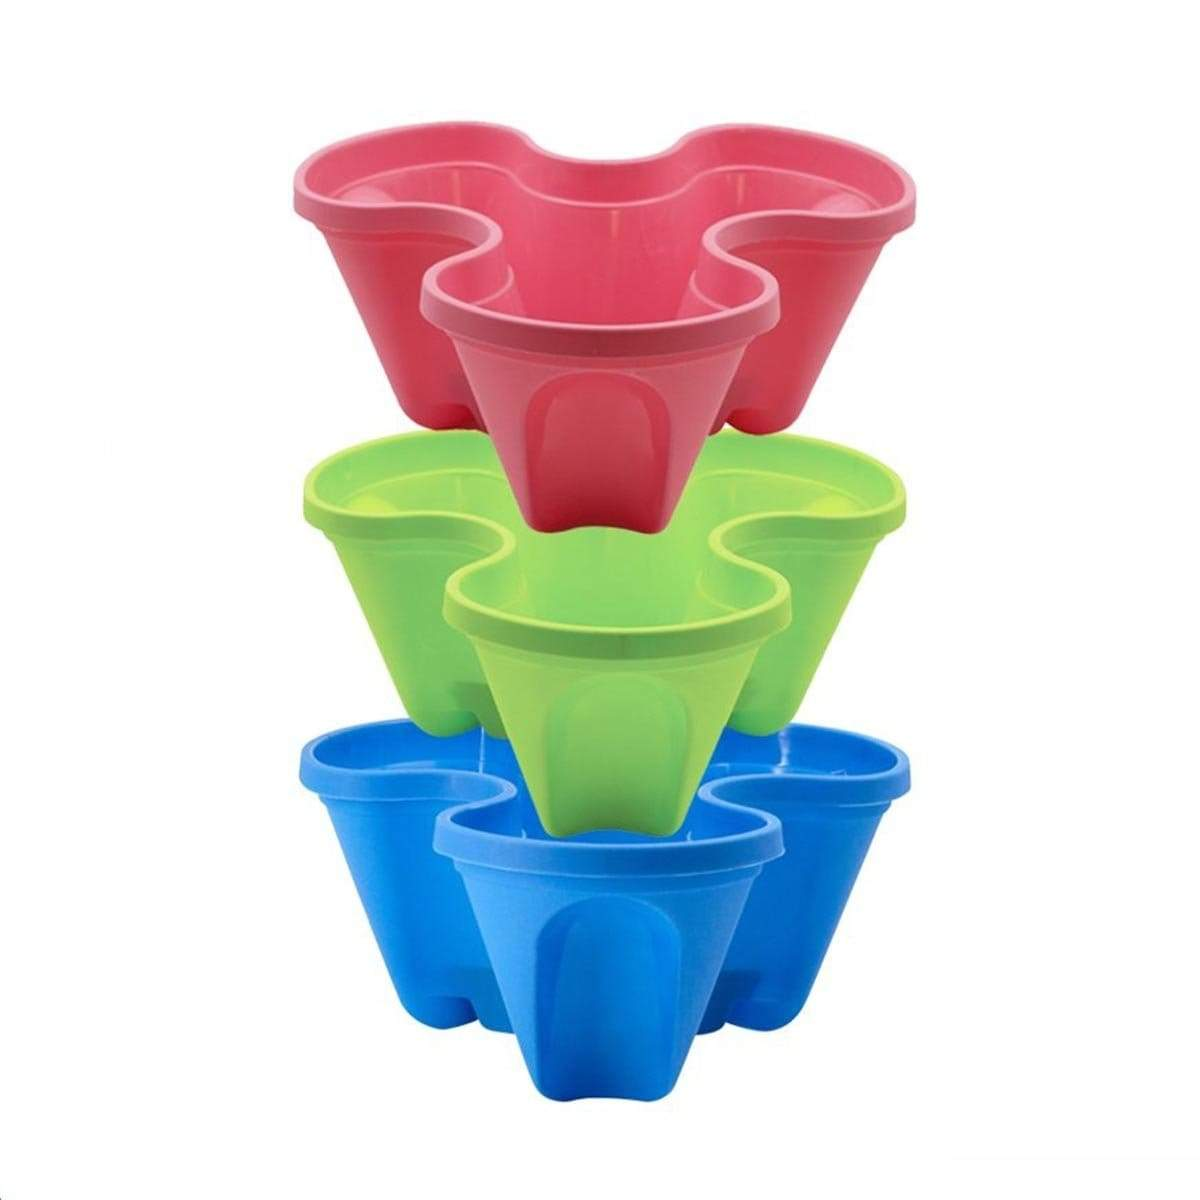 FBL2189 Felton Flower Pot